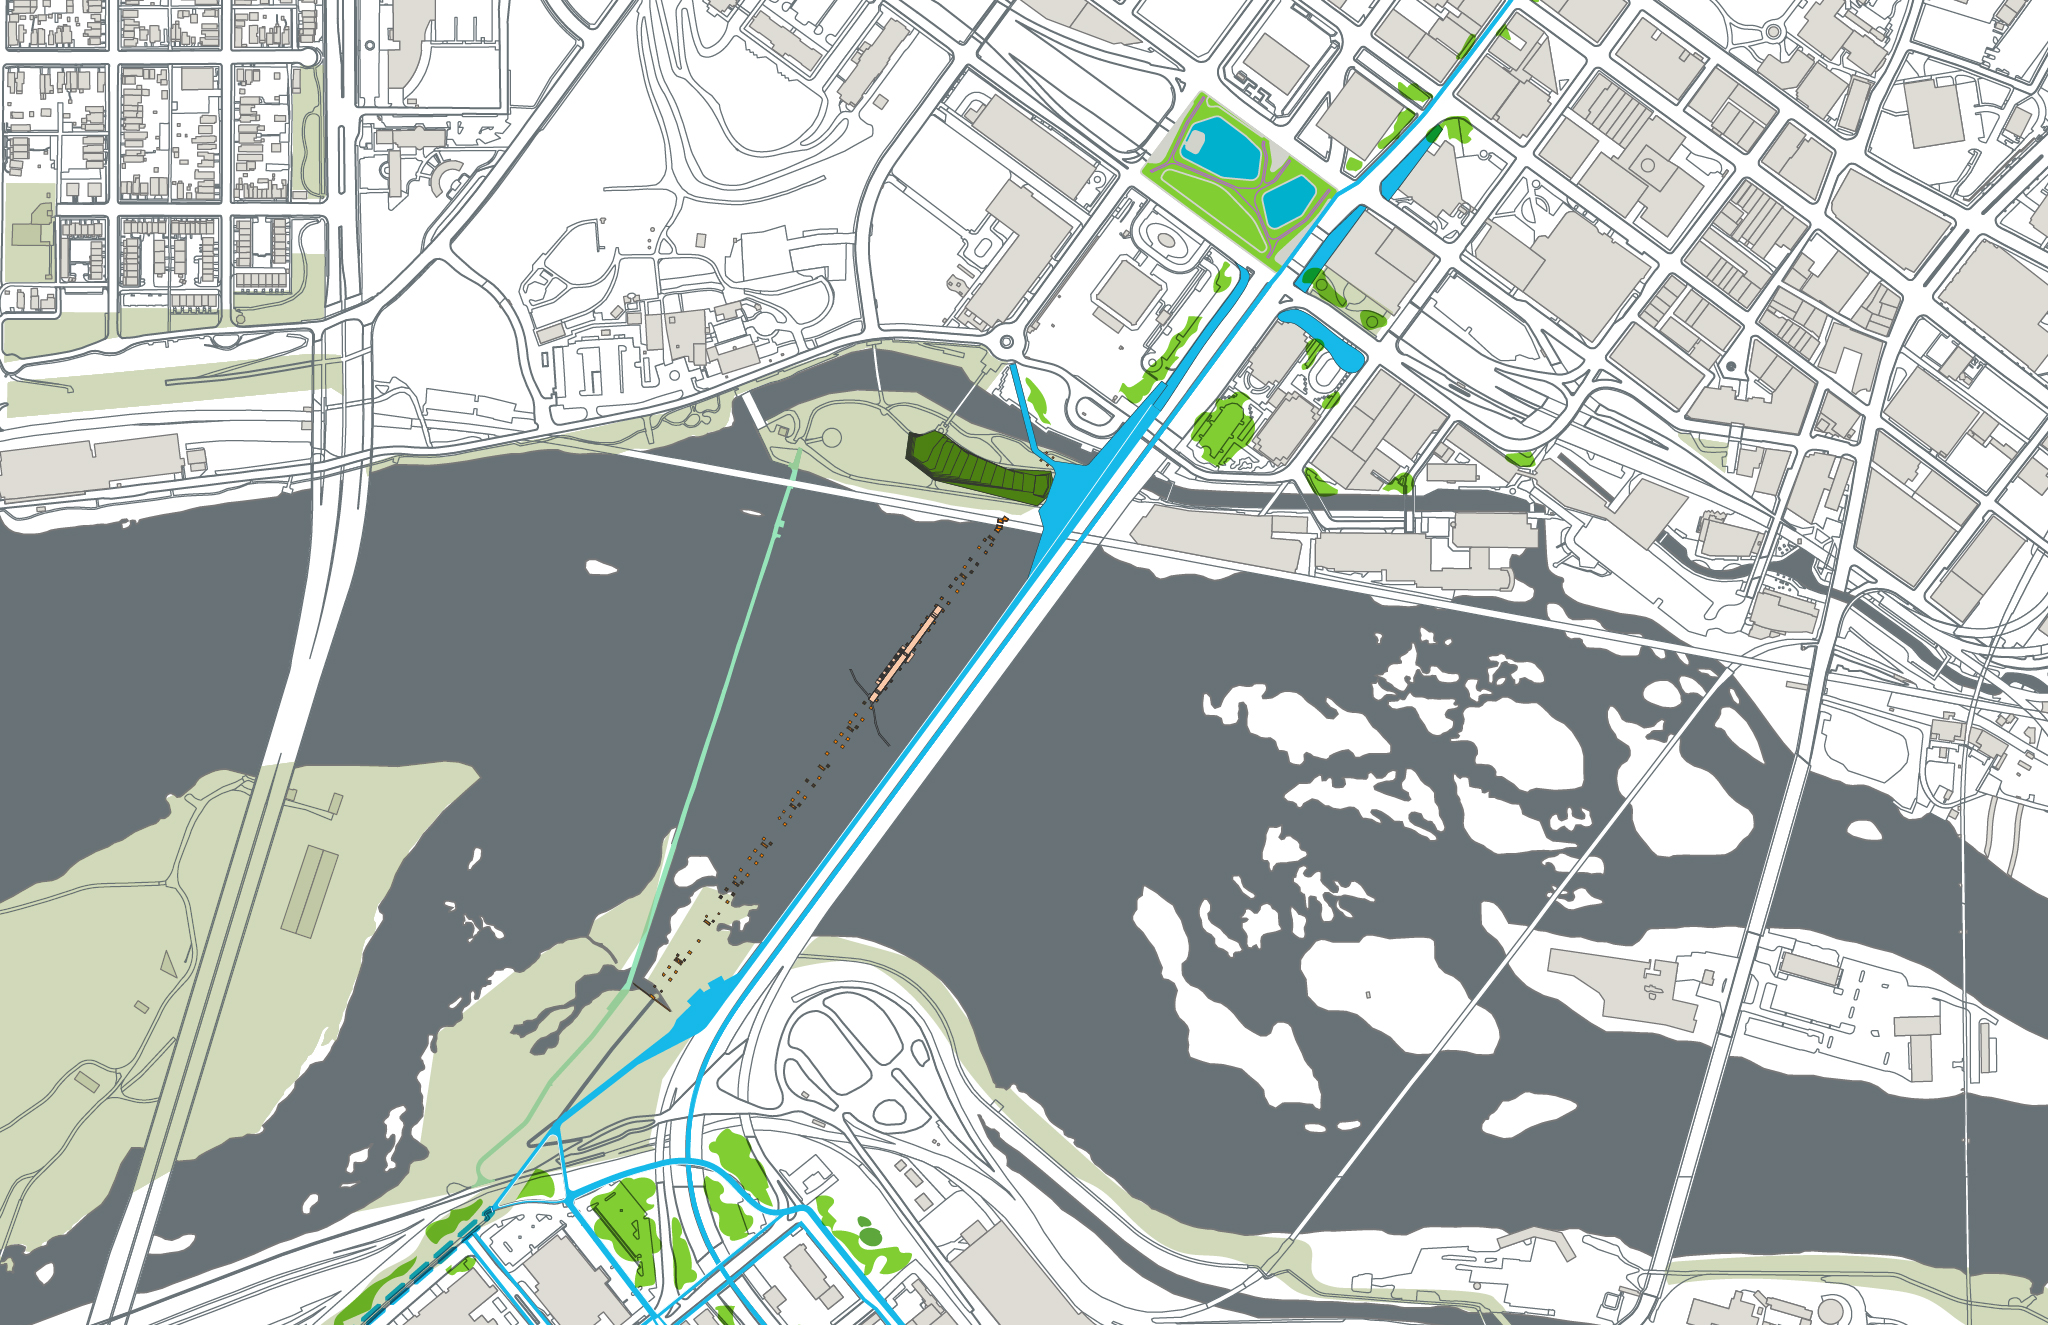 Detail of river-crossing section: Kanawha Plaza to Brown's Island to BridgePark to Second Break Park; green spaces connected by human-scale pathways and plantings